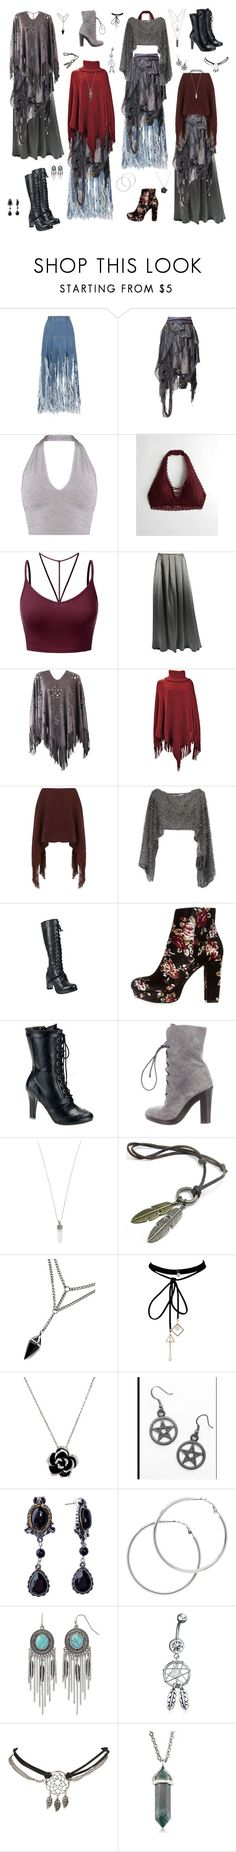 """Slum Angels"" by valaquenta ❤ liked on Polyvore featuring Ksenia Schnaider, Bohemian Society, Hollister Co., J.TOMSON, Valentino, Miss Selfridge, Charlotte Russe, Demonia, Reed Krakoff and Marc Jacobs"